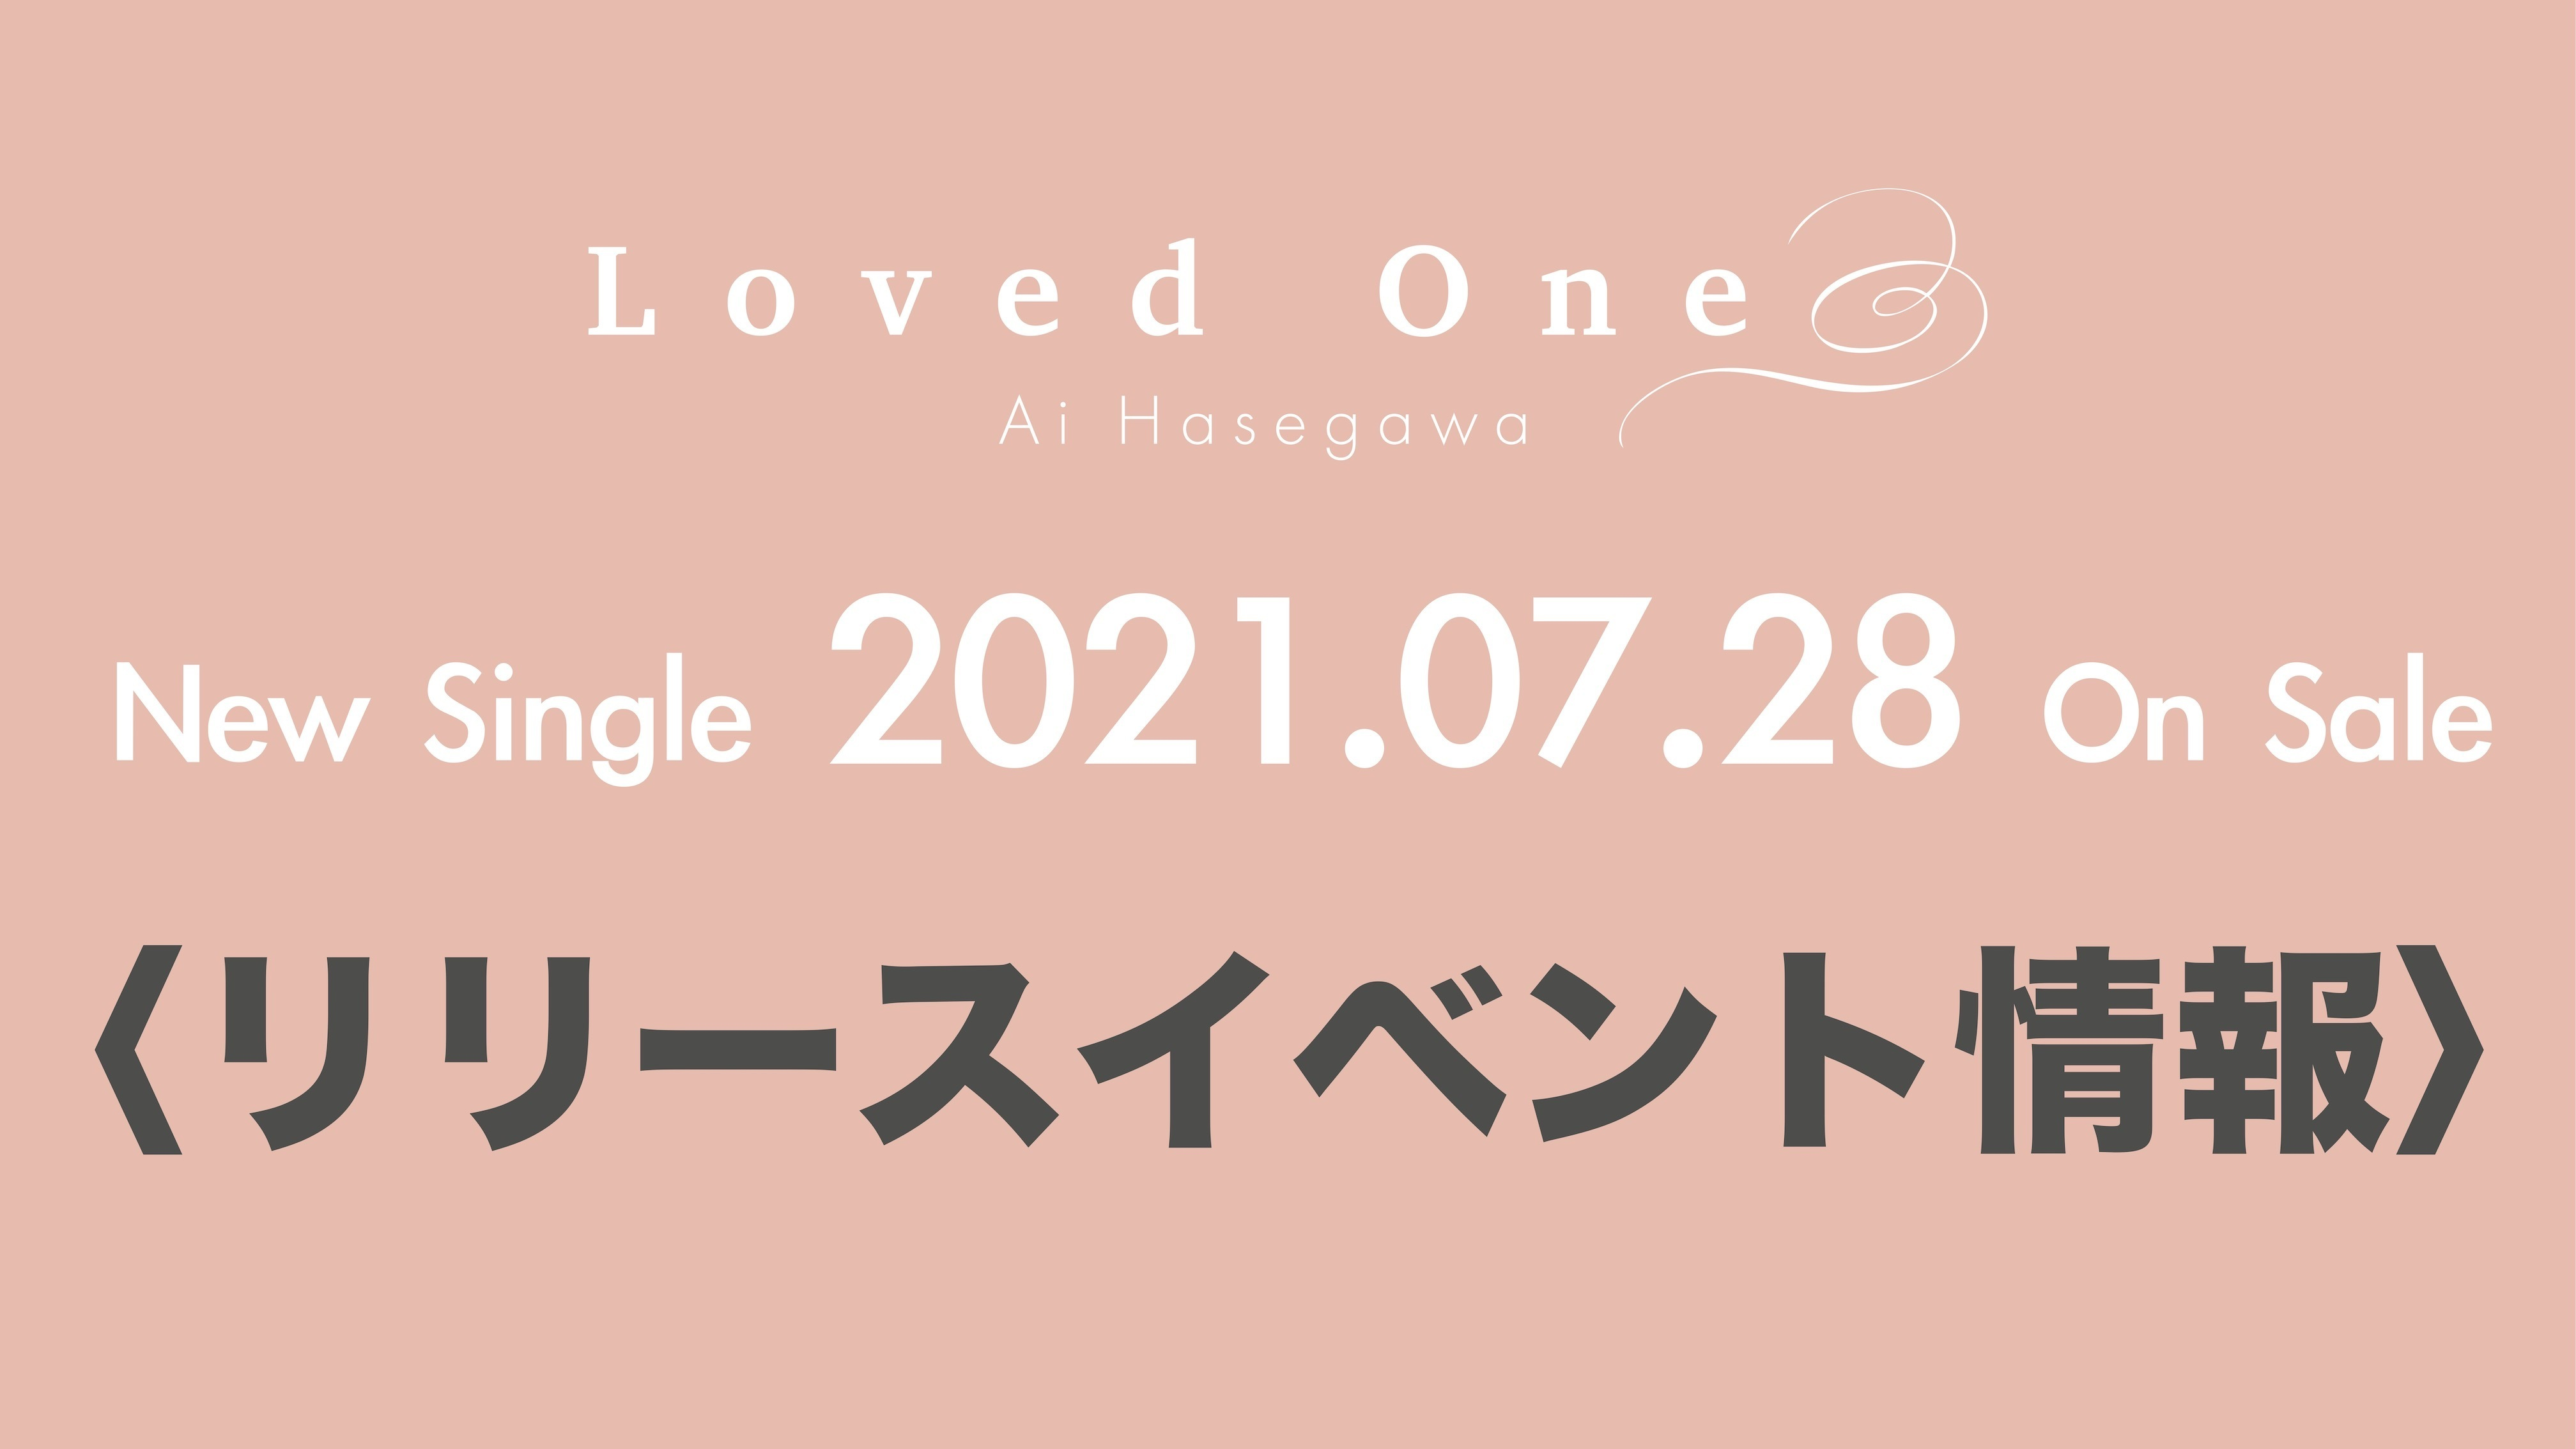 Loved One リリースイベント情報